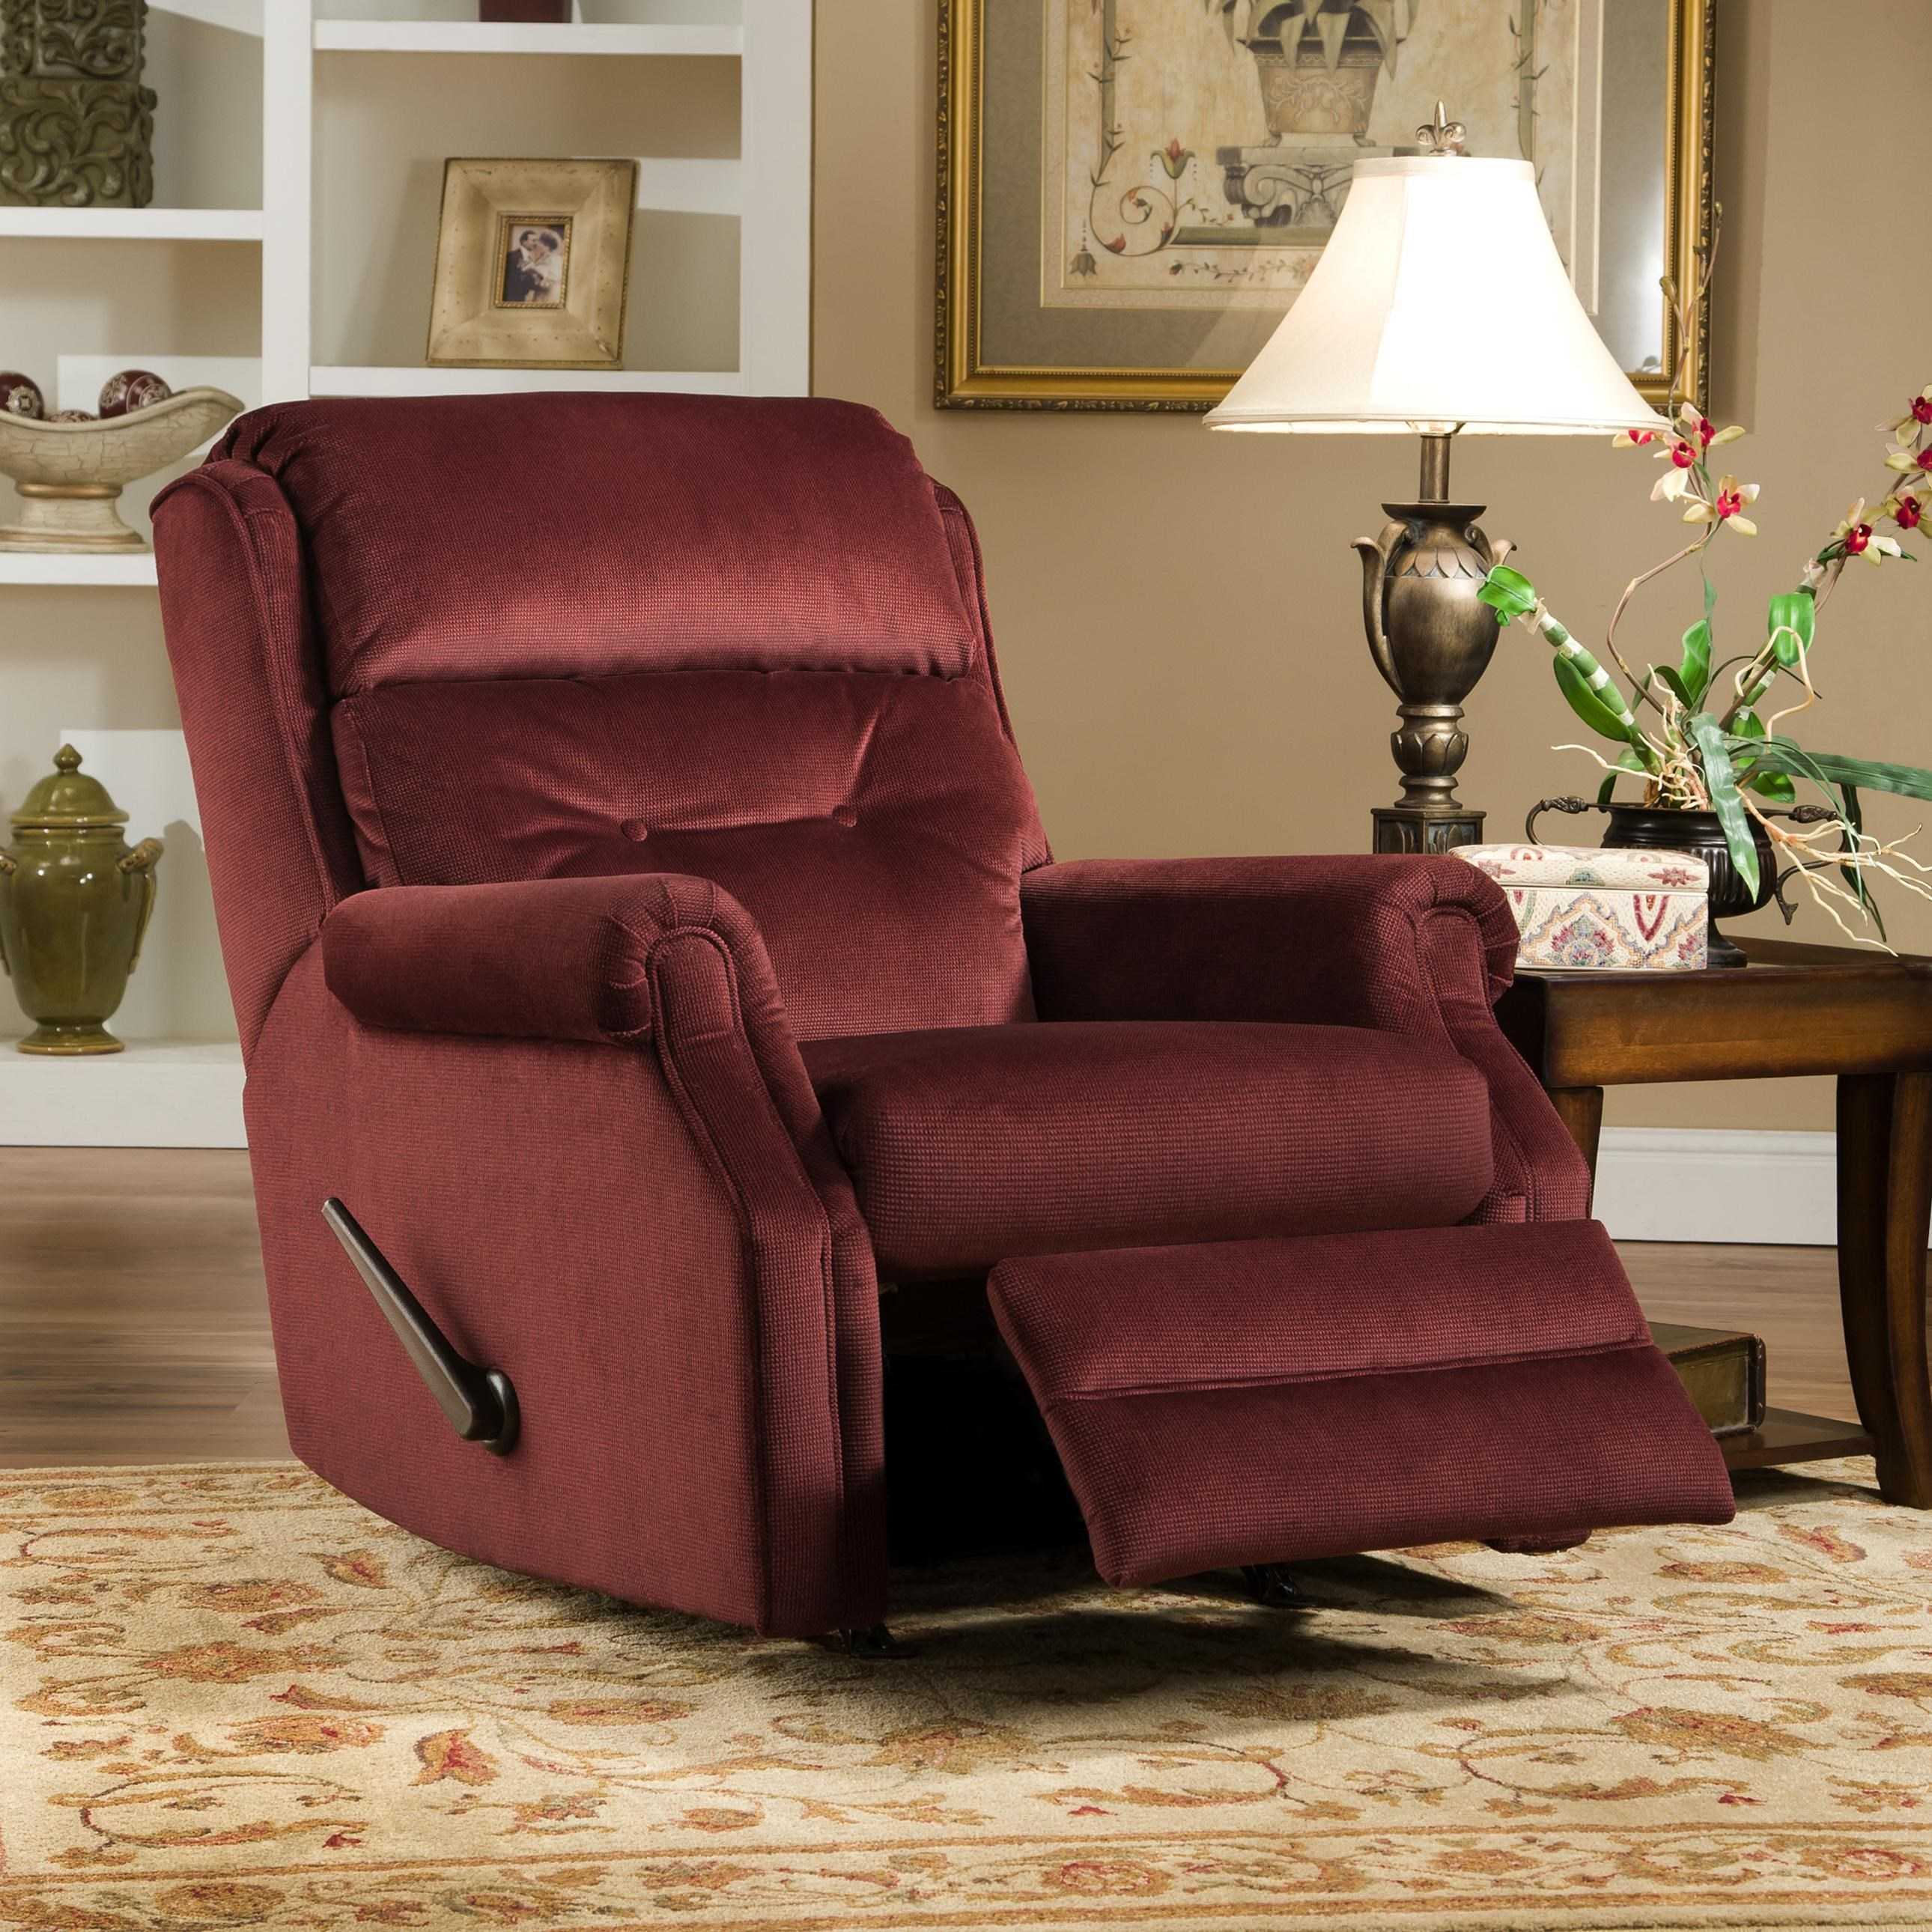 ... Recliner Shown May Not Represent Exact Features Indicated  sc 1 st  Hudsonu0027s Furniture & Southern Motion Recliners Nantucket Wall Recliner with Elegant ... islam-shia.org